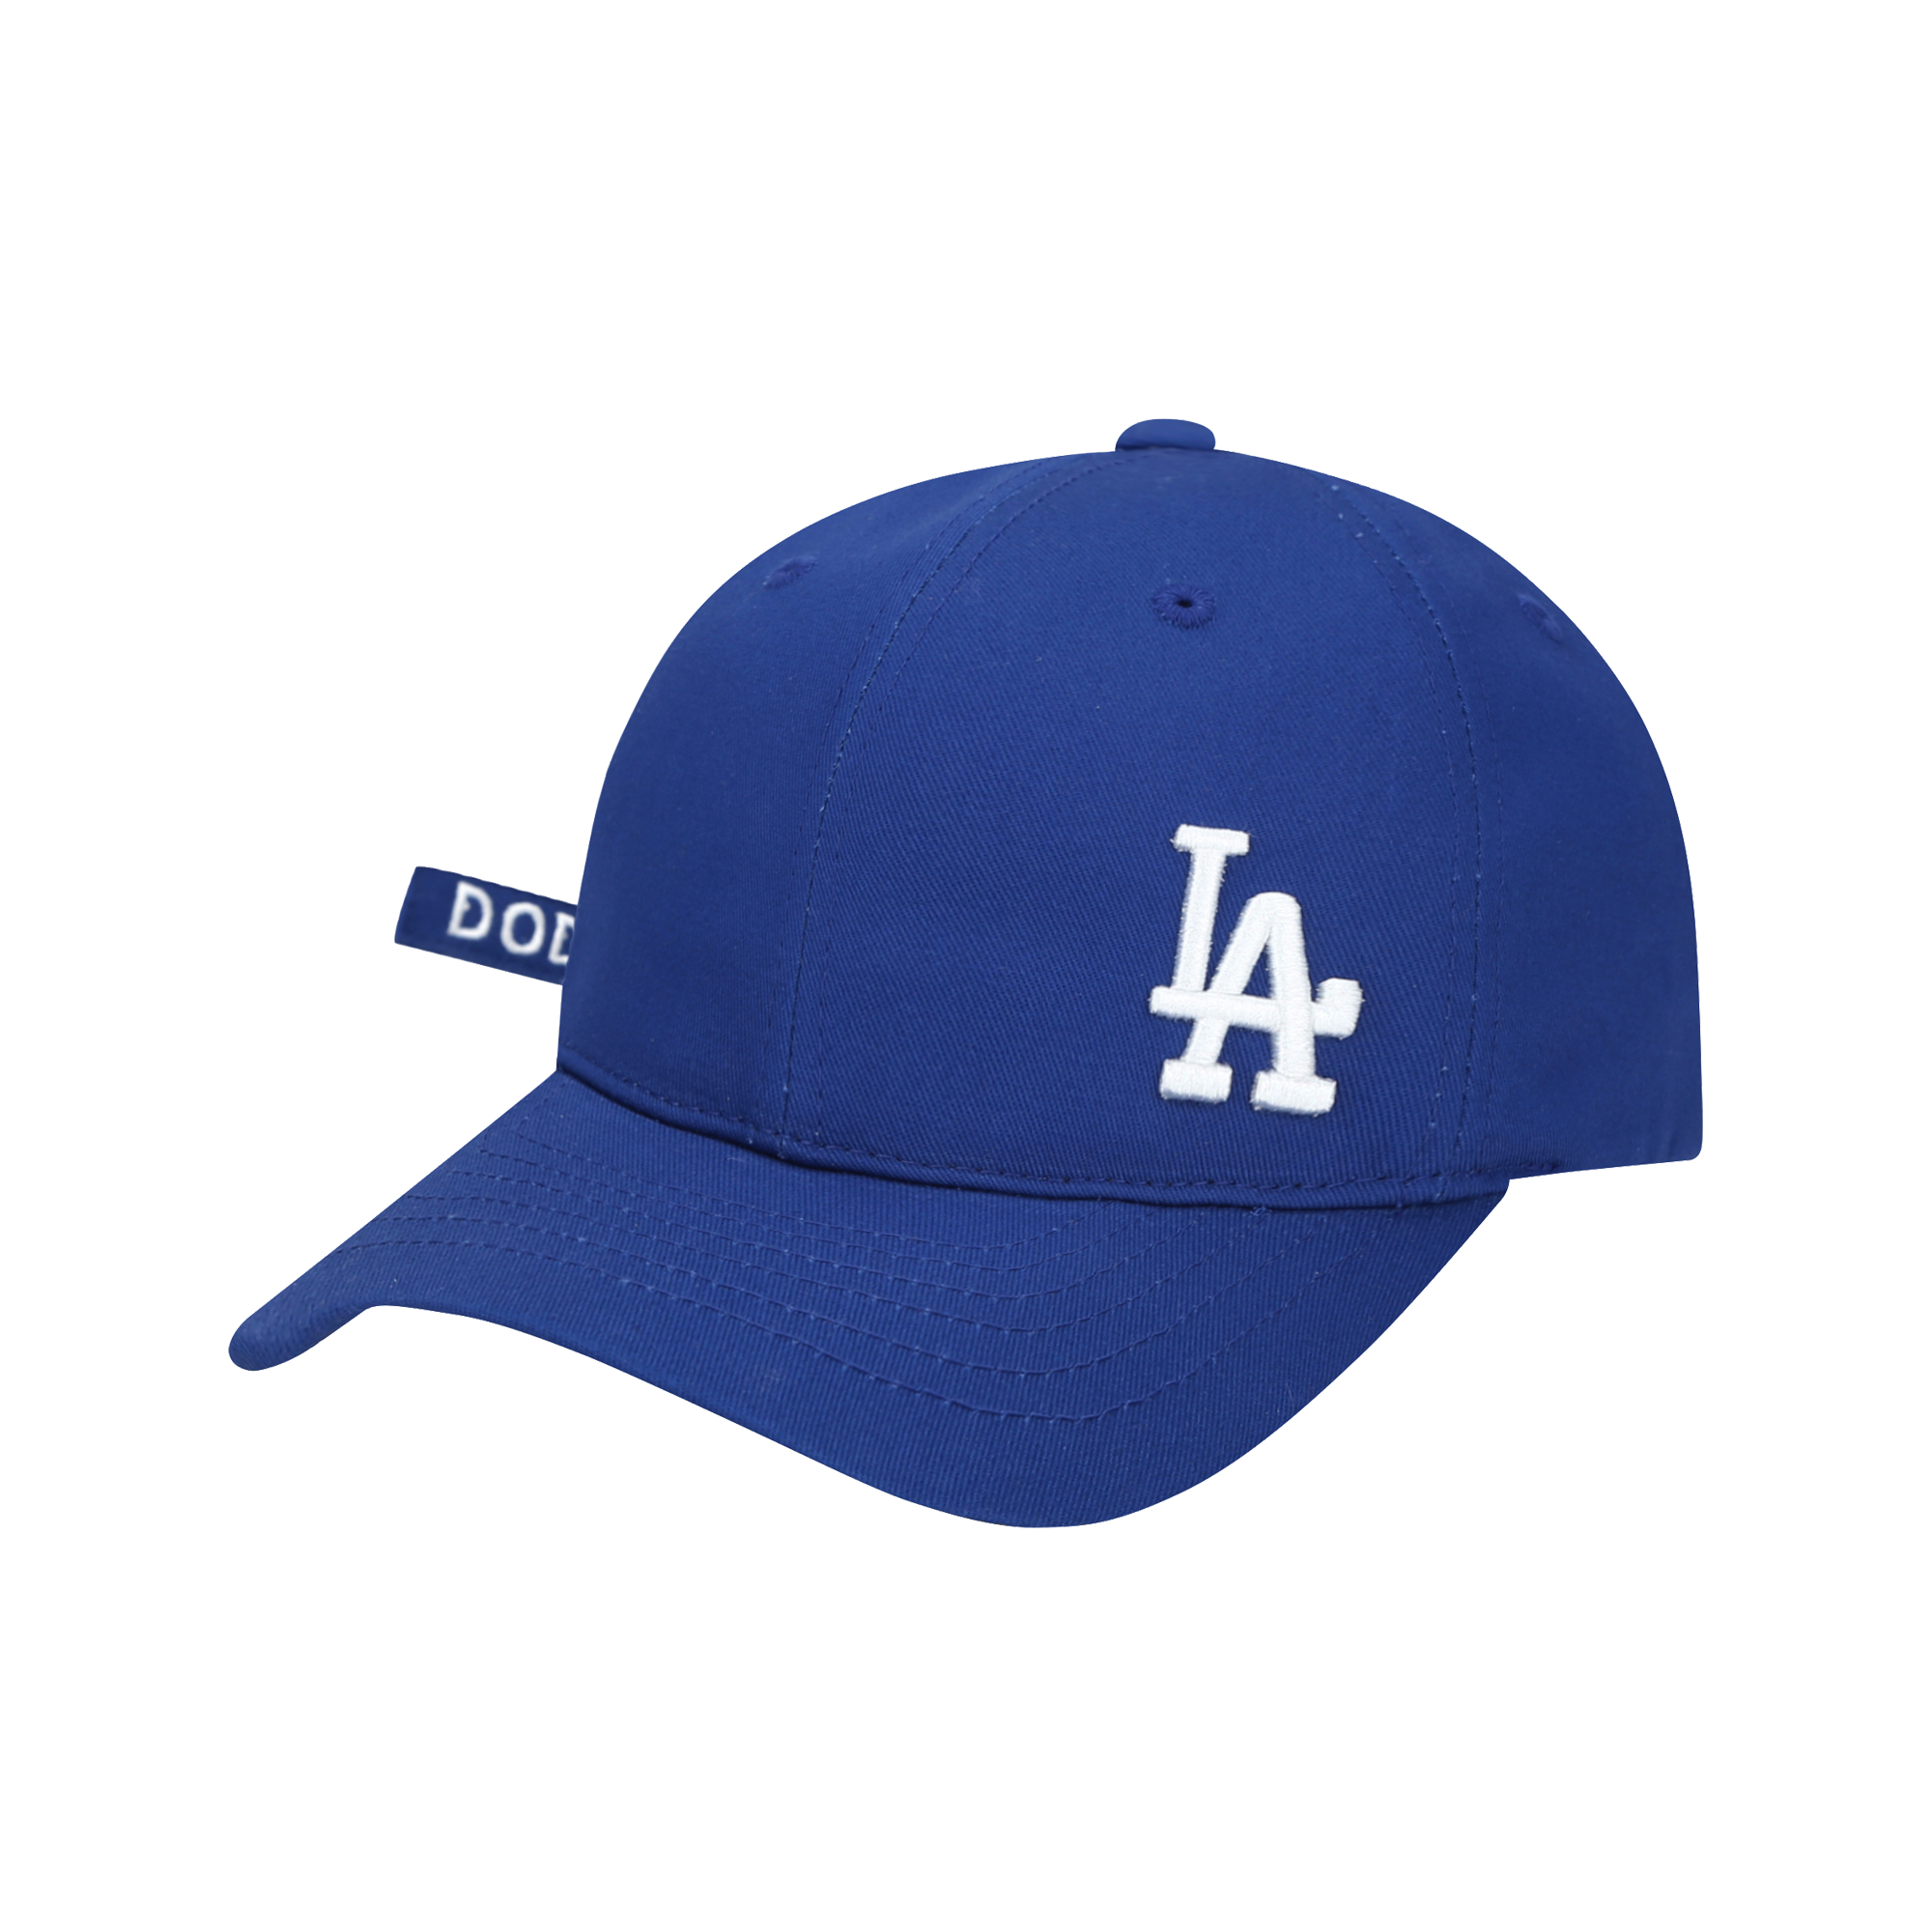 LA DODGERS SCRIPT TAIL BALL CAP